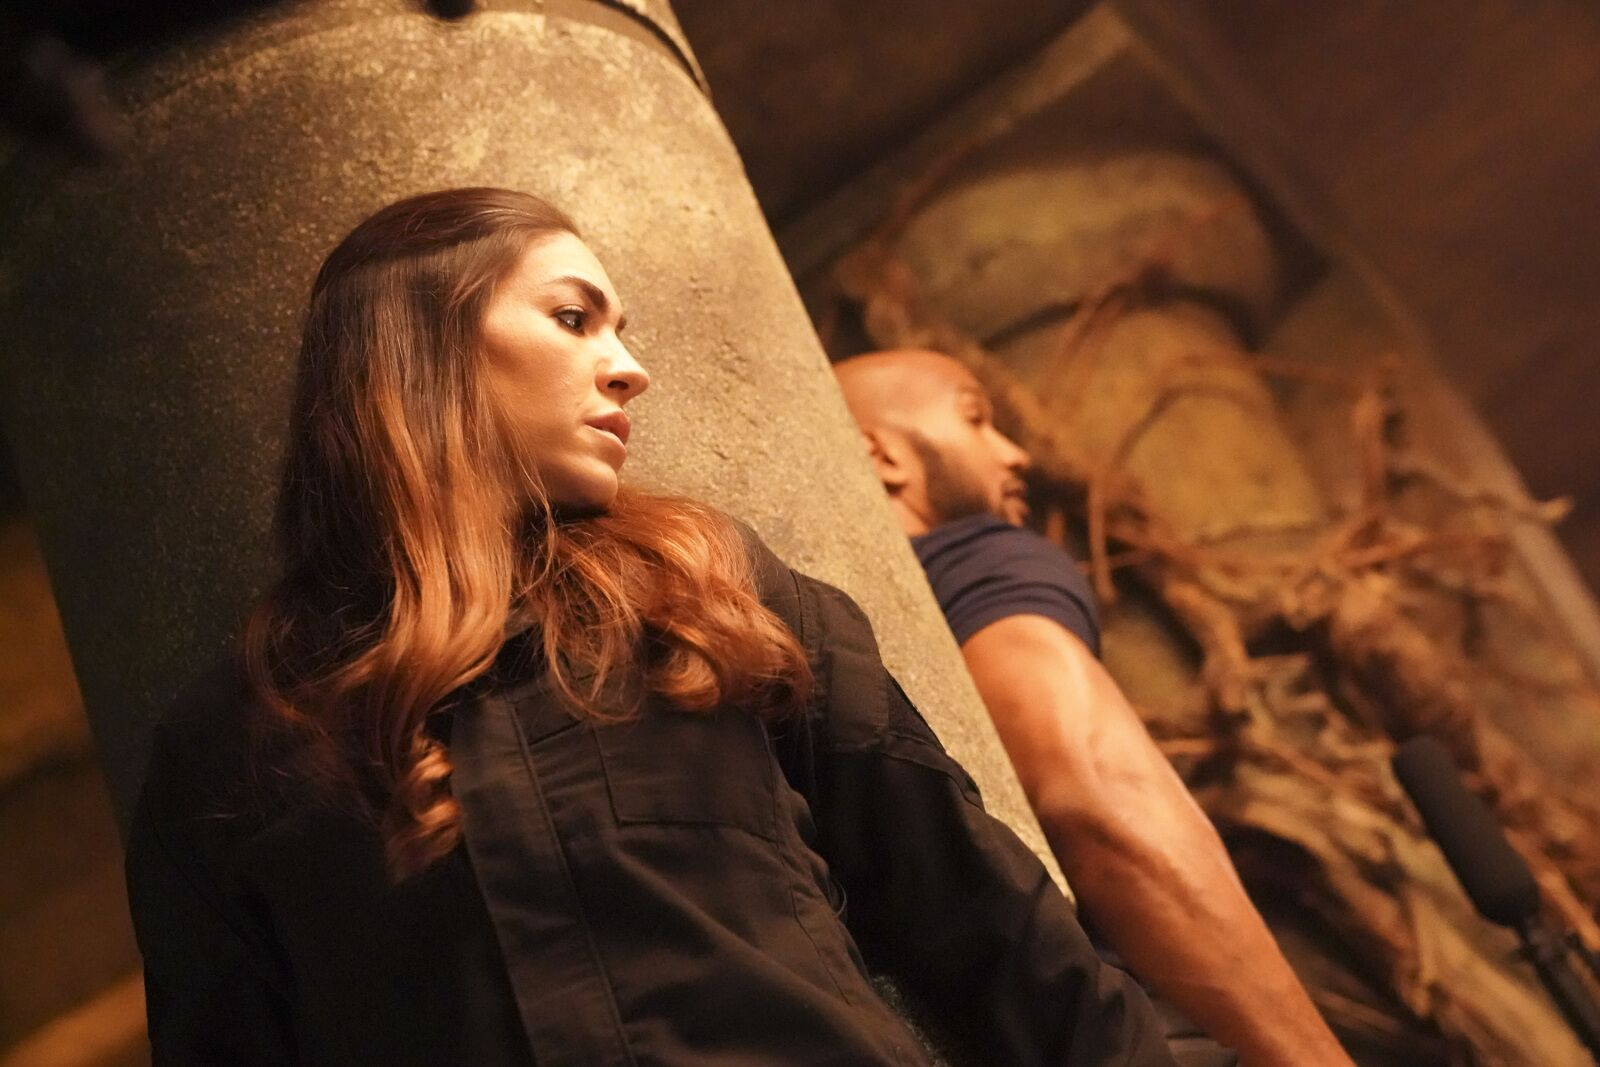 Marvel's Agents of SHIELD preview: Who will win in the season finale?